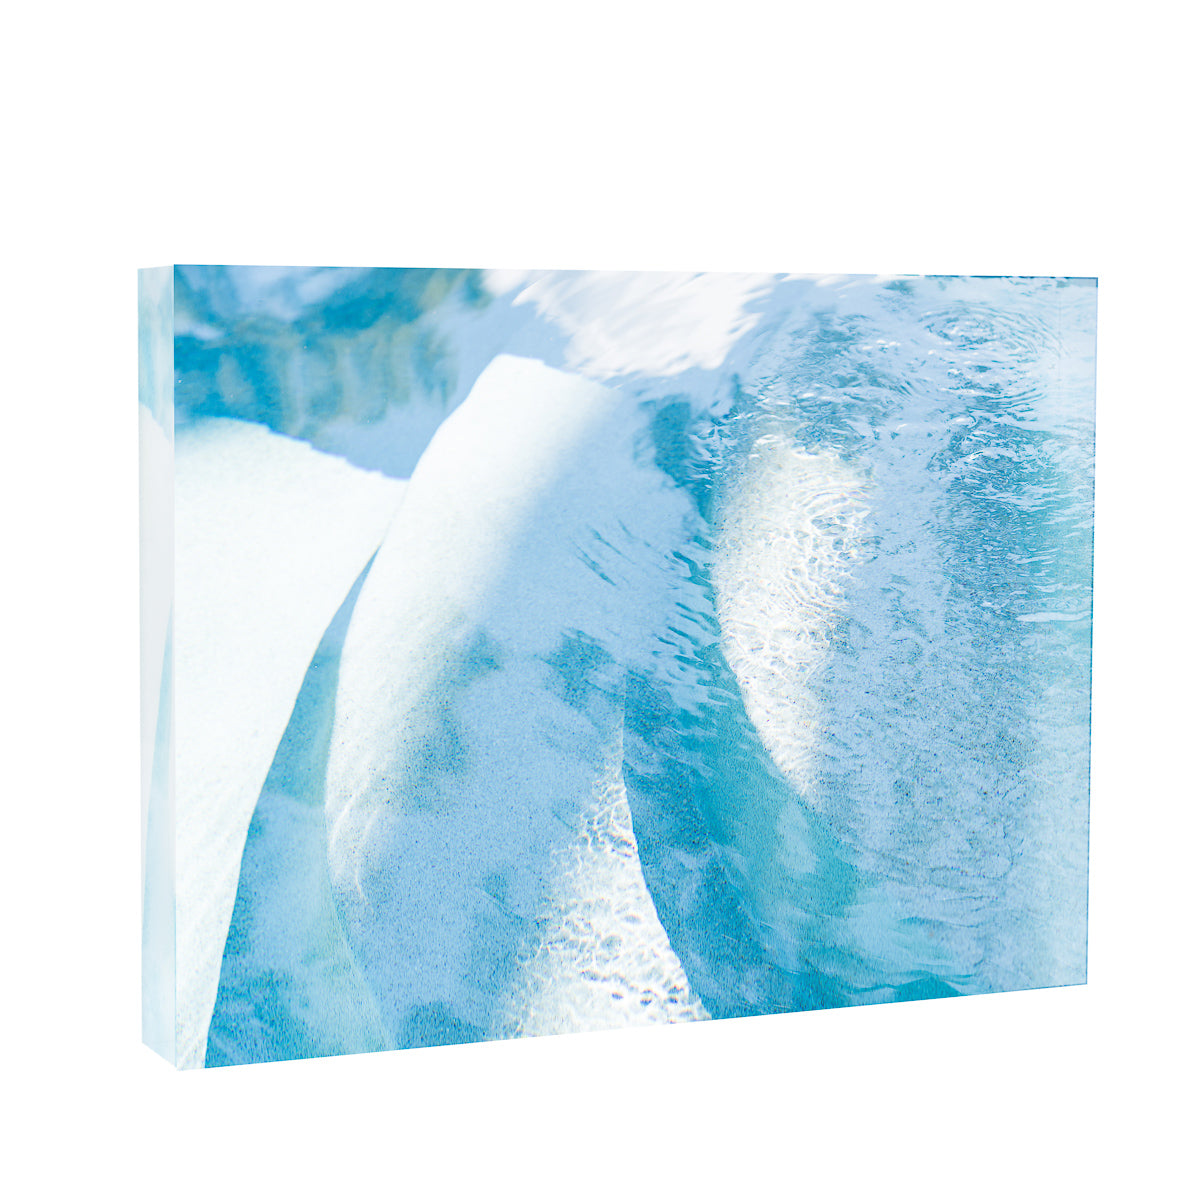 Acrylic Block : Curved Blue Pool